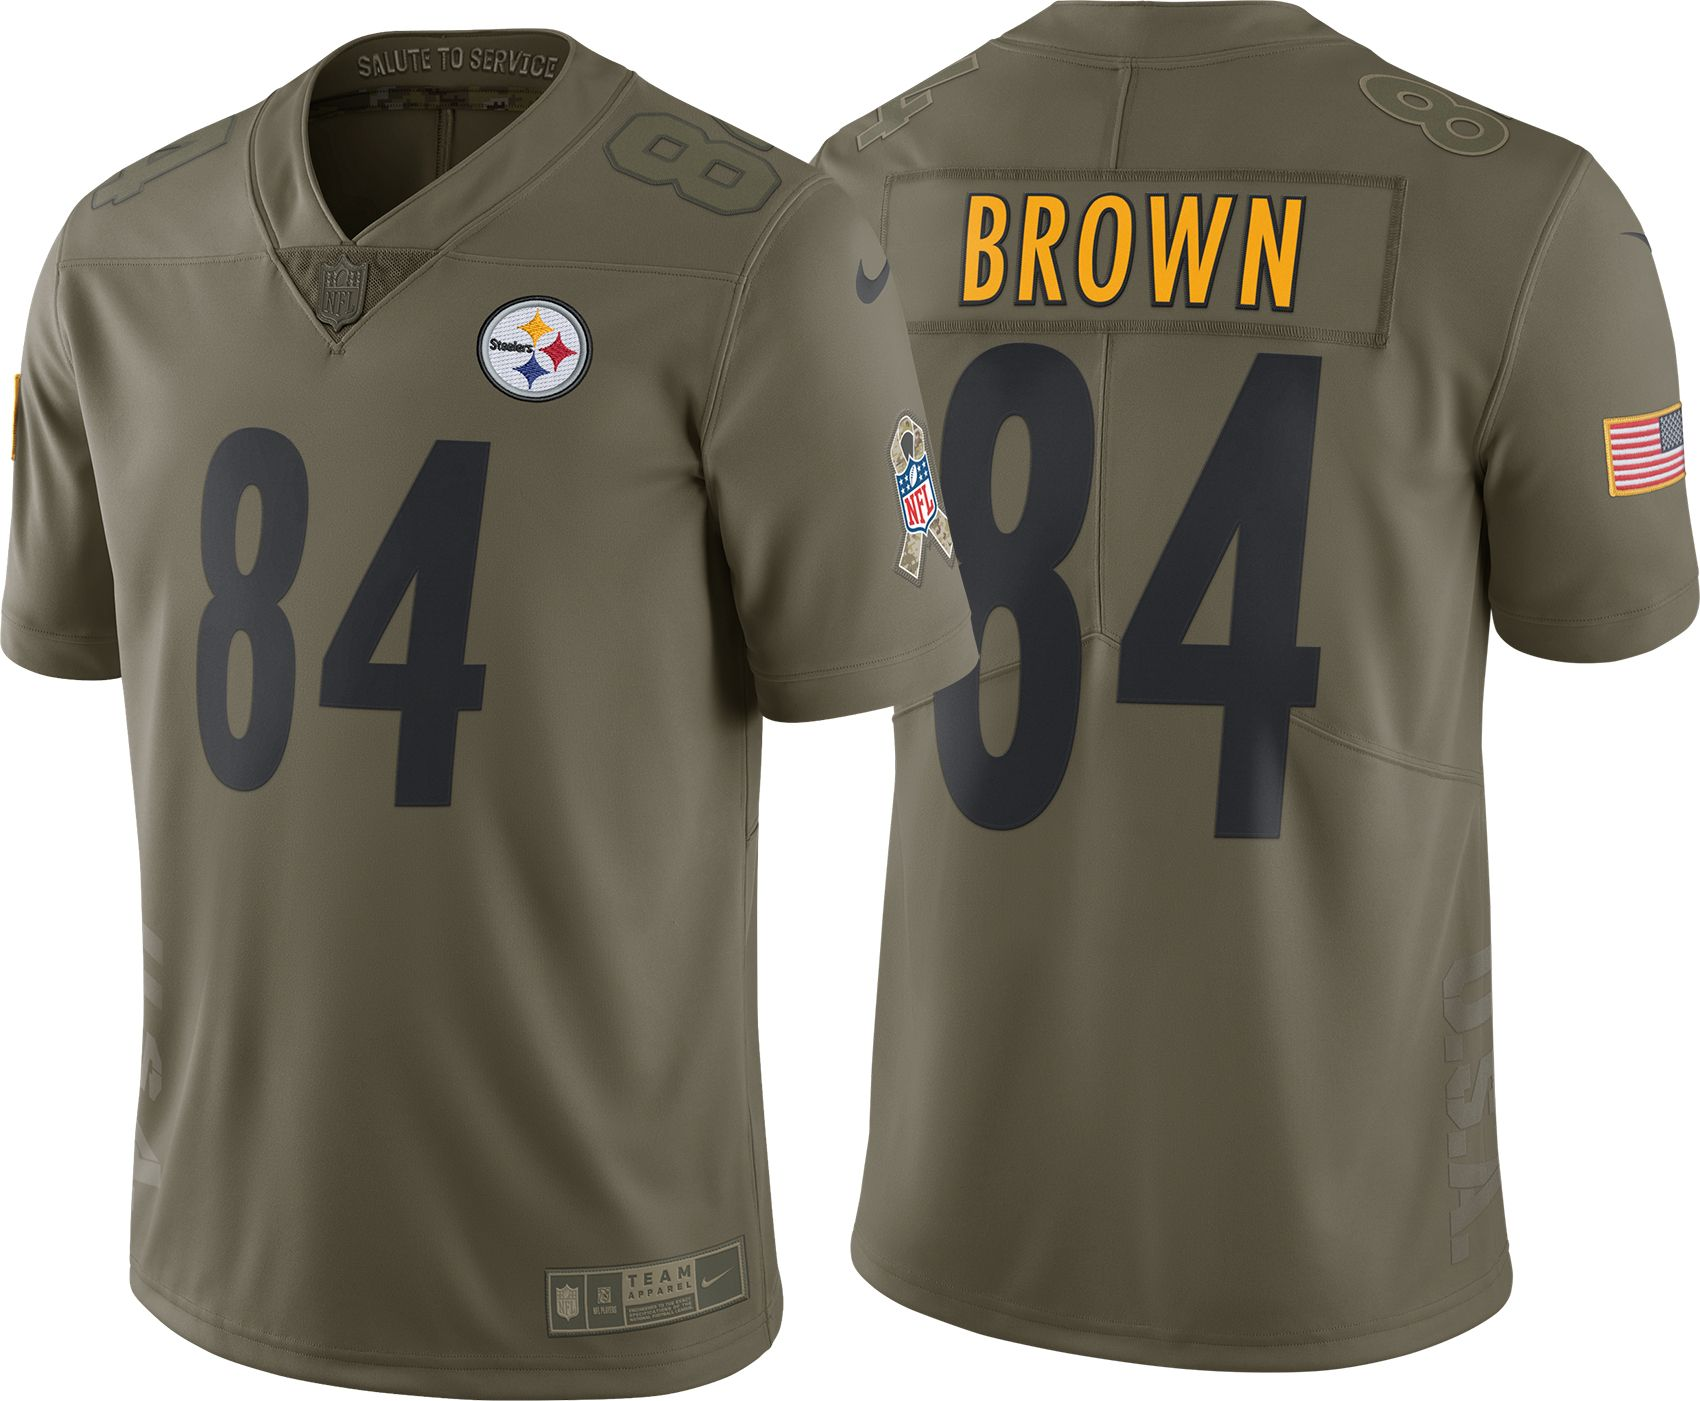 8dc6dafde12 ... new zealand nike mens home limited salute to service pittsburgh steelers  antonio brown 84 jersey dicks